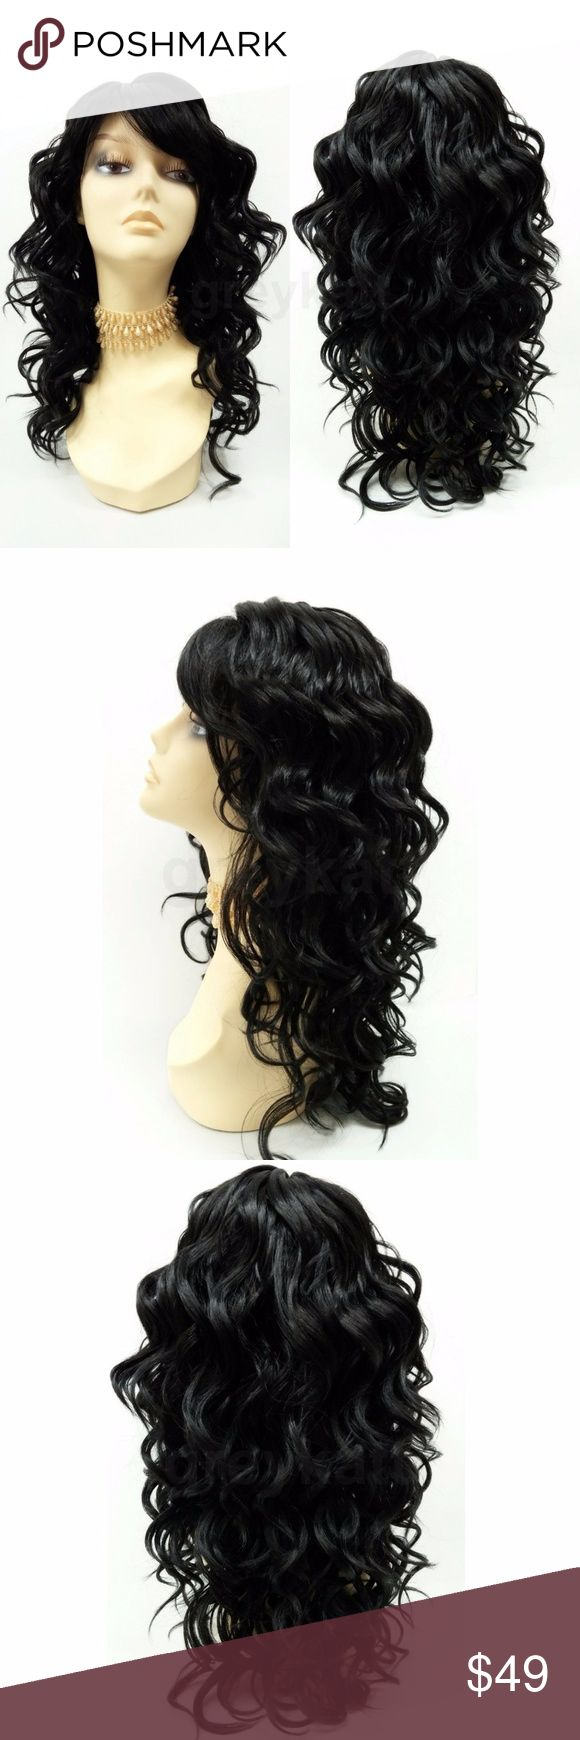 """Off Black Curly Heat Resistant Wig with Bangs 18"""" Long roller curls wig with straight bangs featuring a skin part and heat resistant synthetic fibers which can be styled with heating tools such as curling irons, flat irons, and heated rollers up to 350 F. Color: Off Black (1B) Circumference: Adjustable 21"""" - 22"""" inches Materials: Heat Resistant Synthetic fibers Wig prices are firm. Accessories Hair Accessories"""